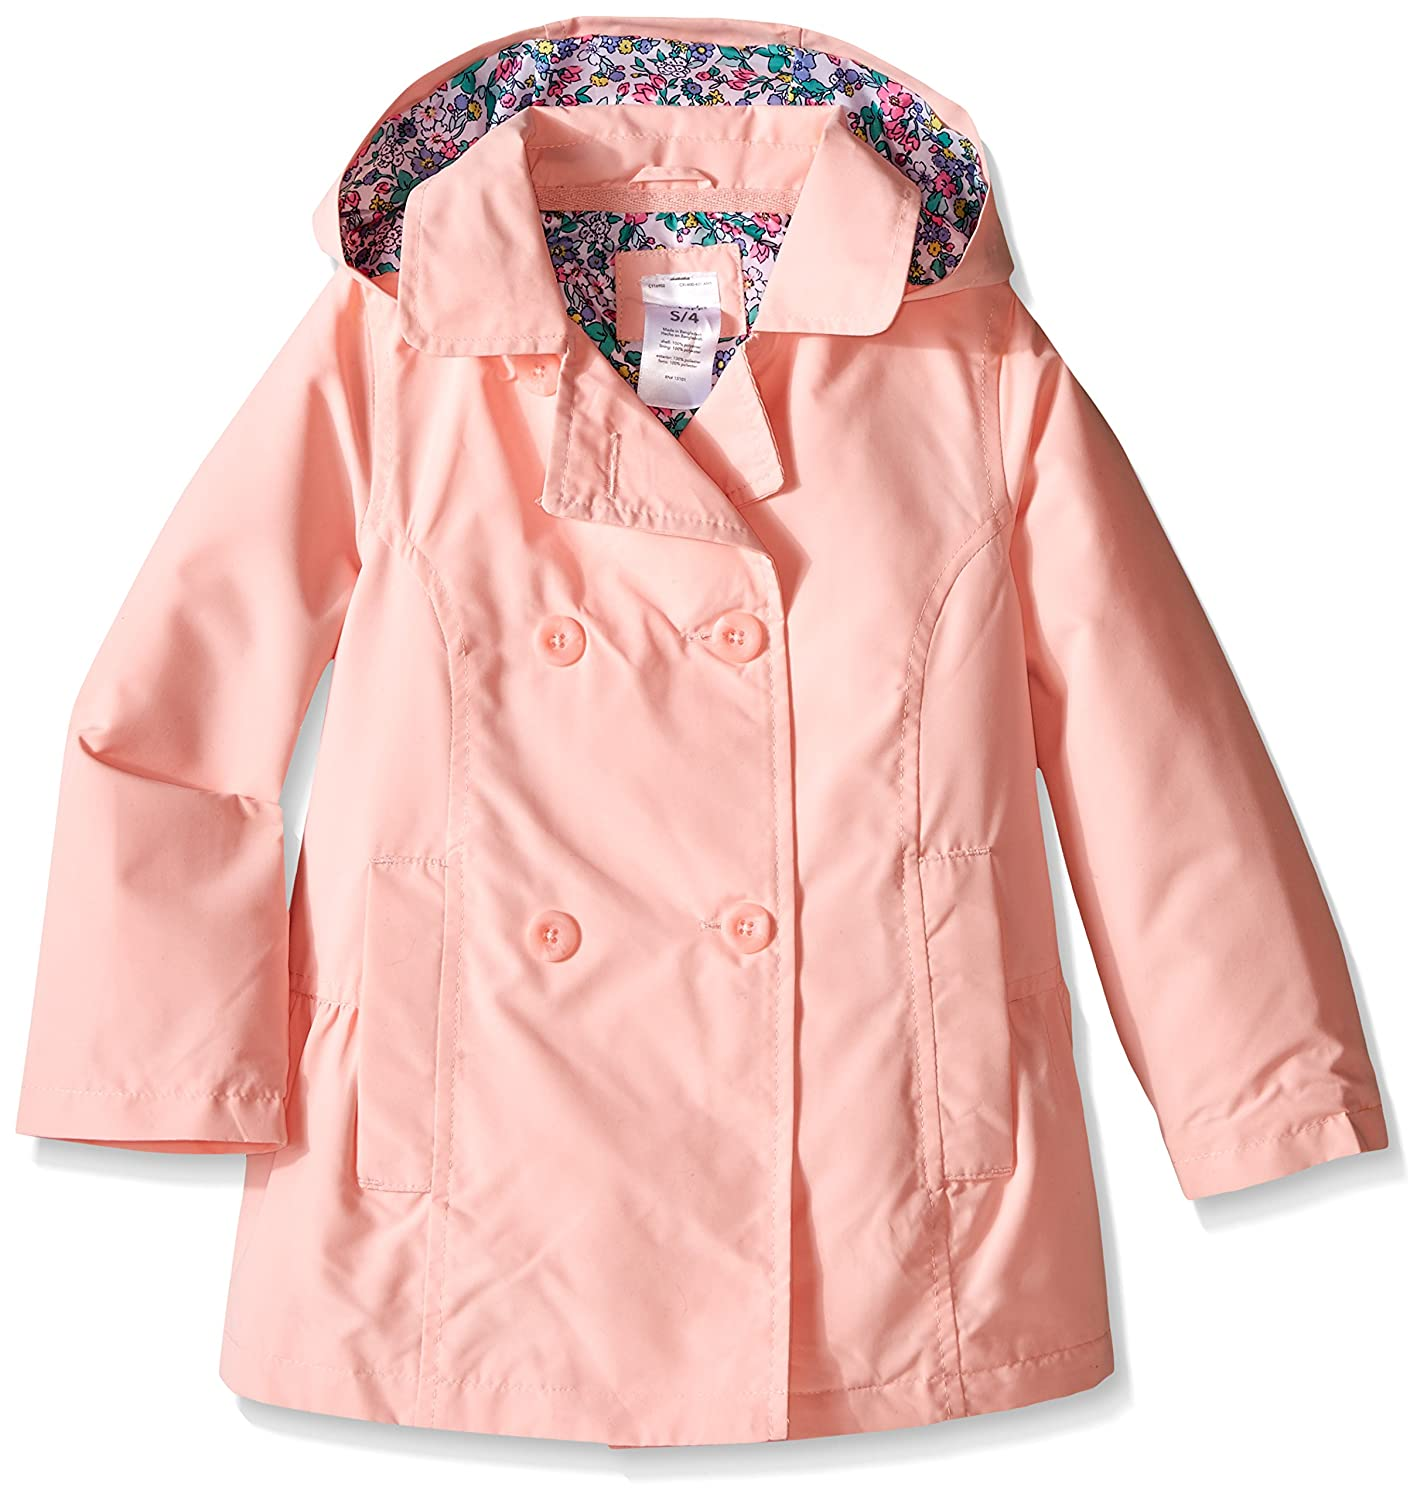 Carter's Girls' Solid Poly Trench Coat C116702